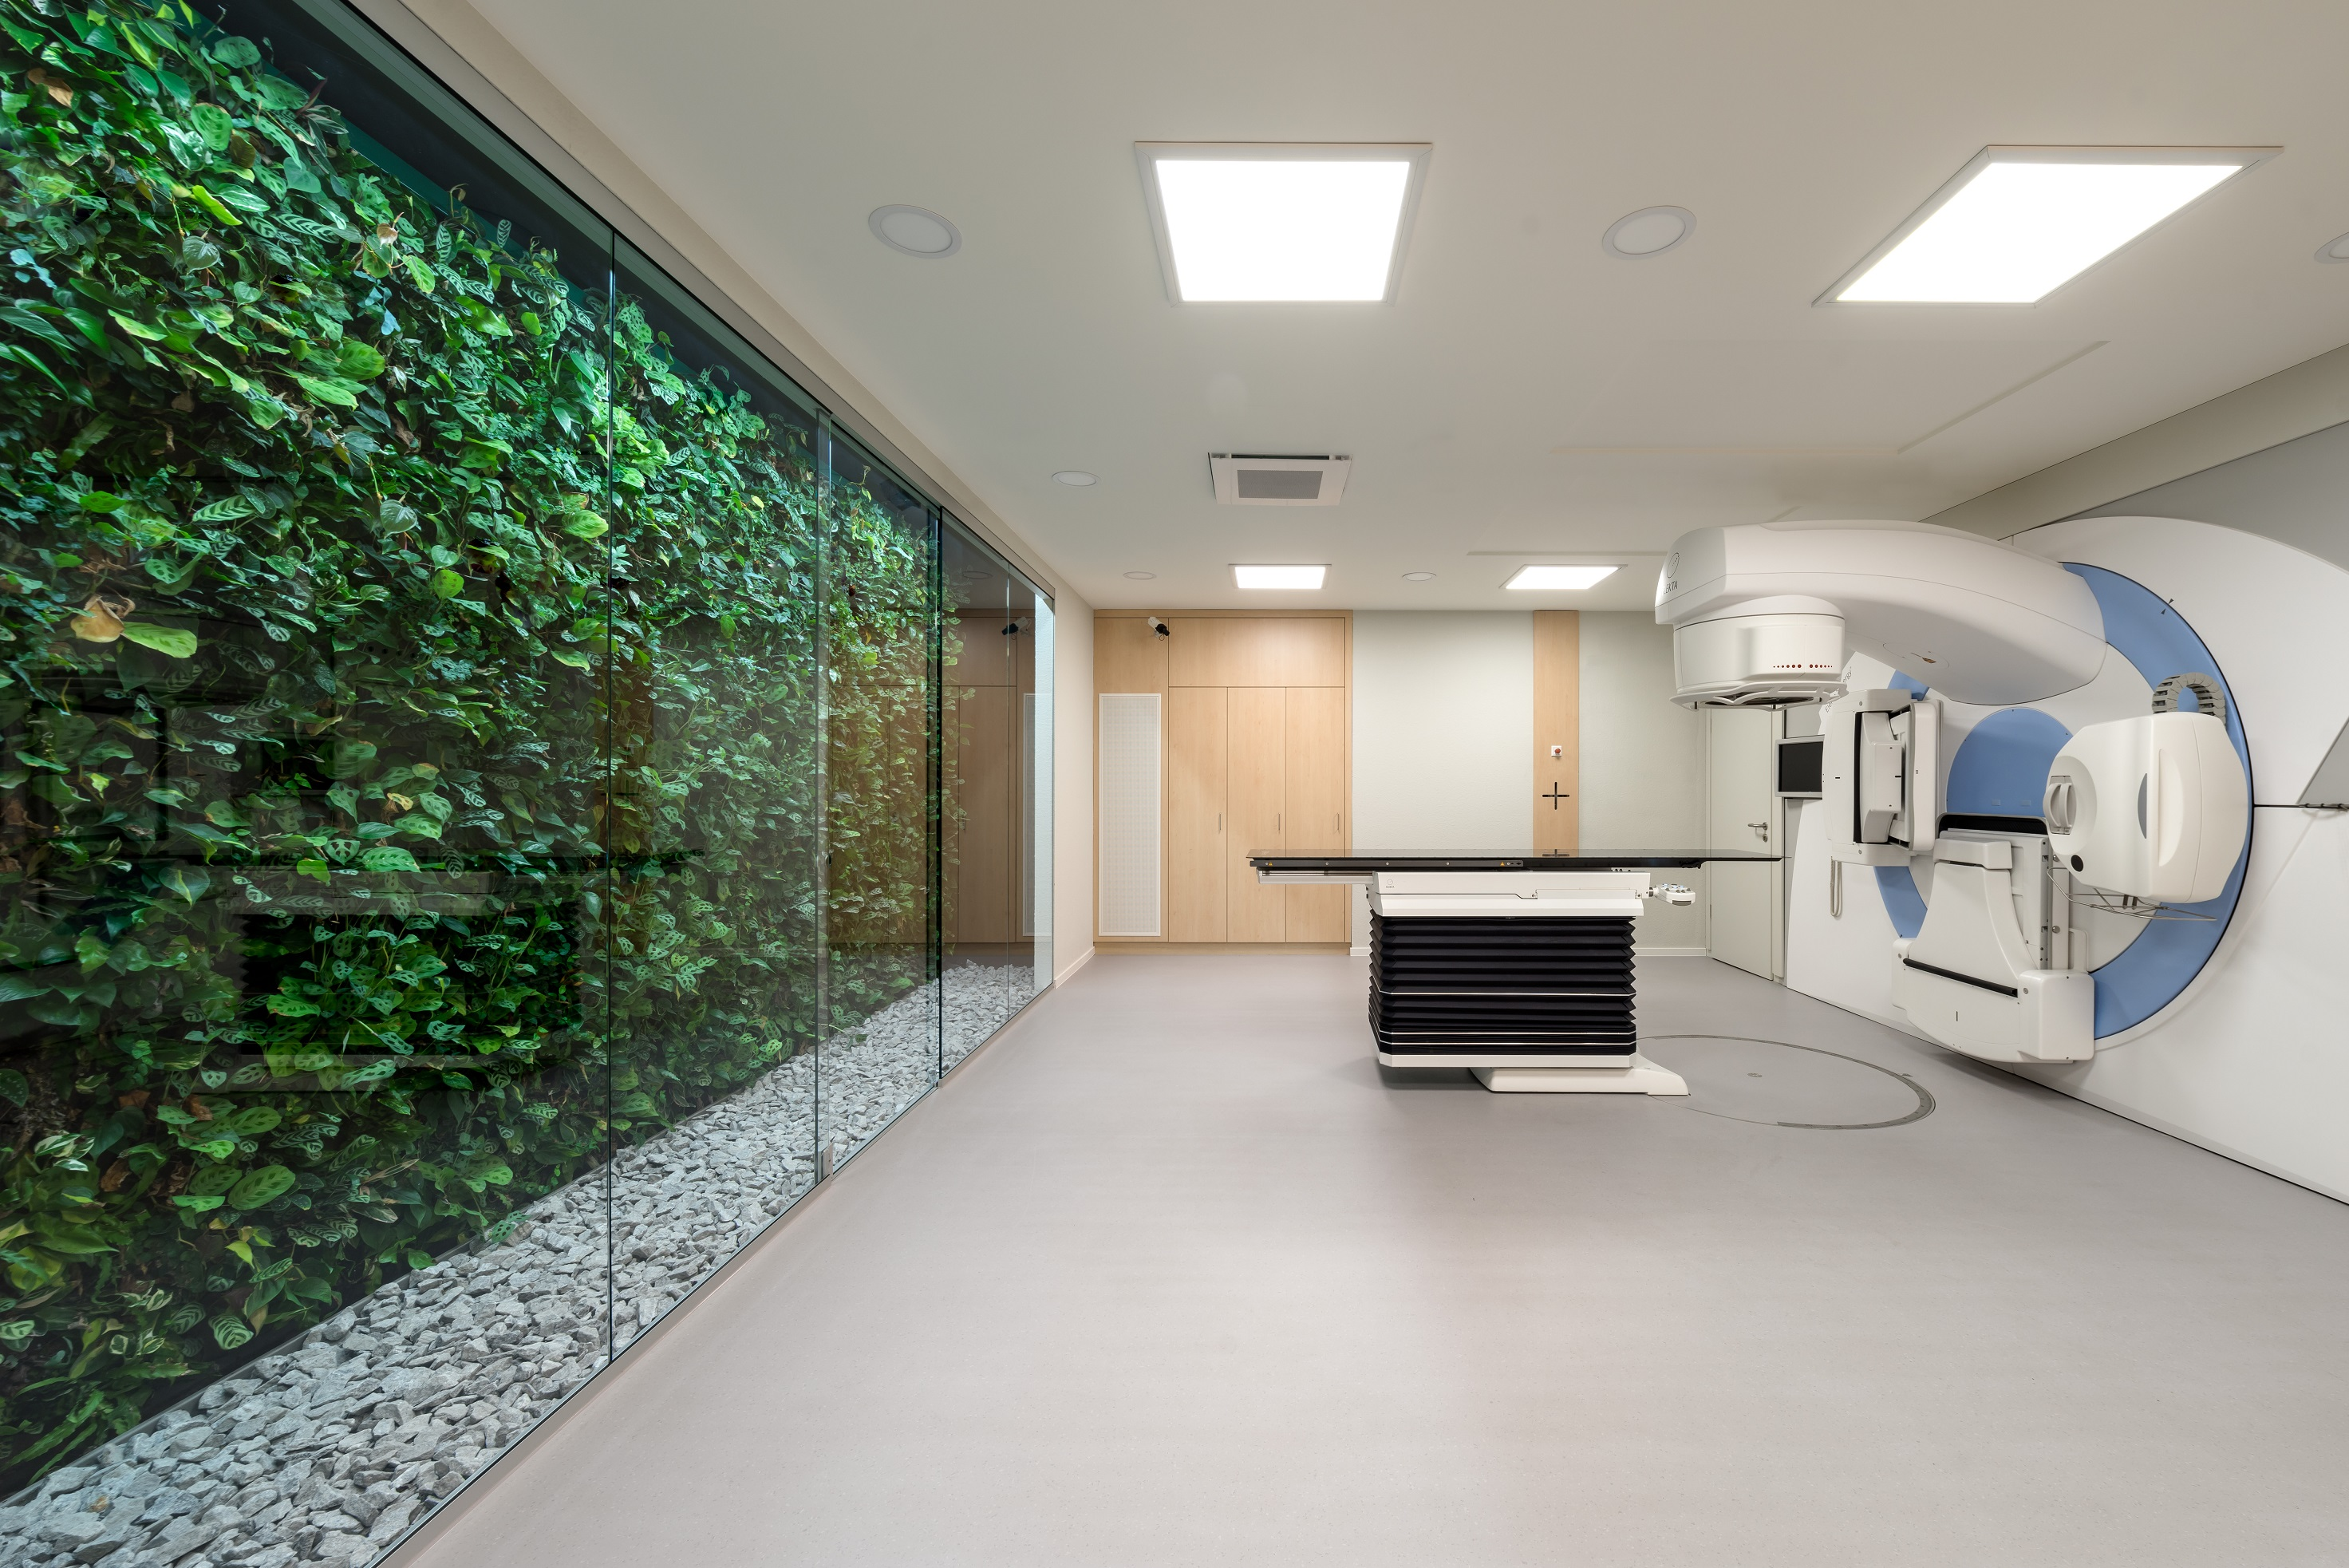 Healing environment in a new radiation therapy center